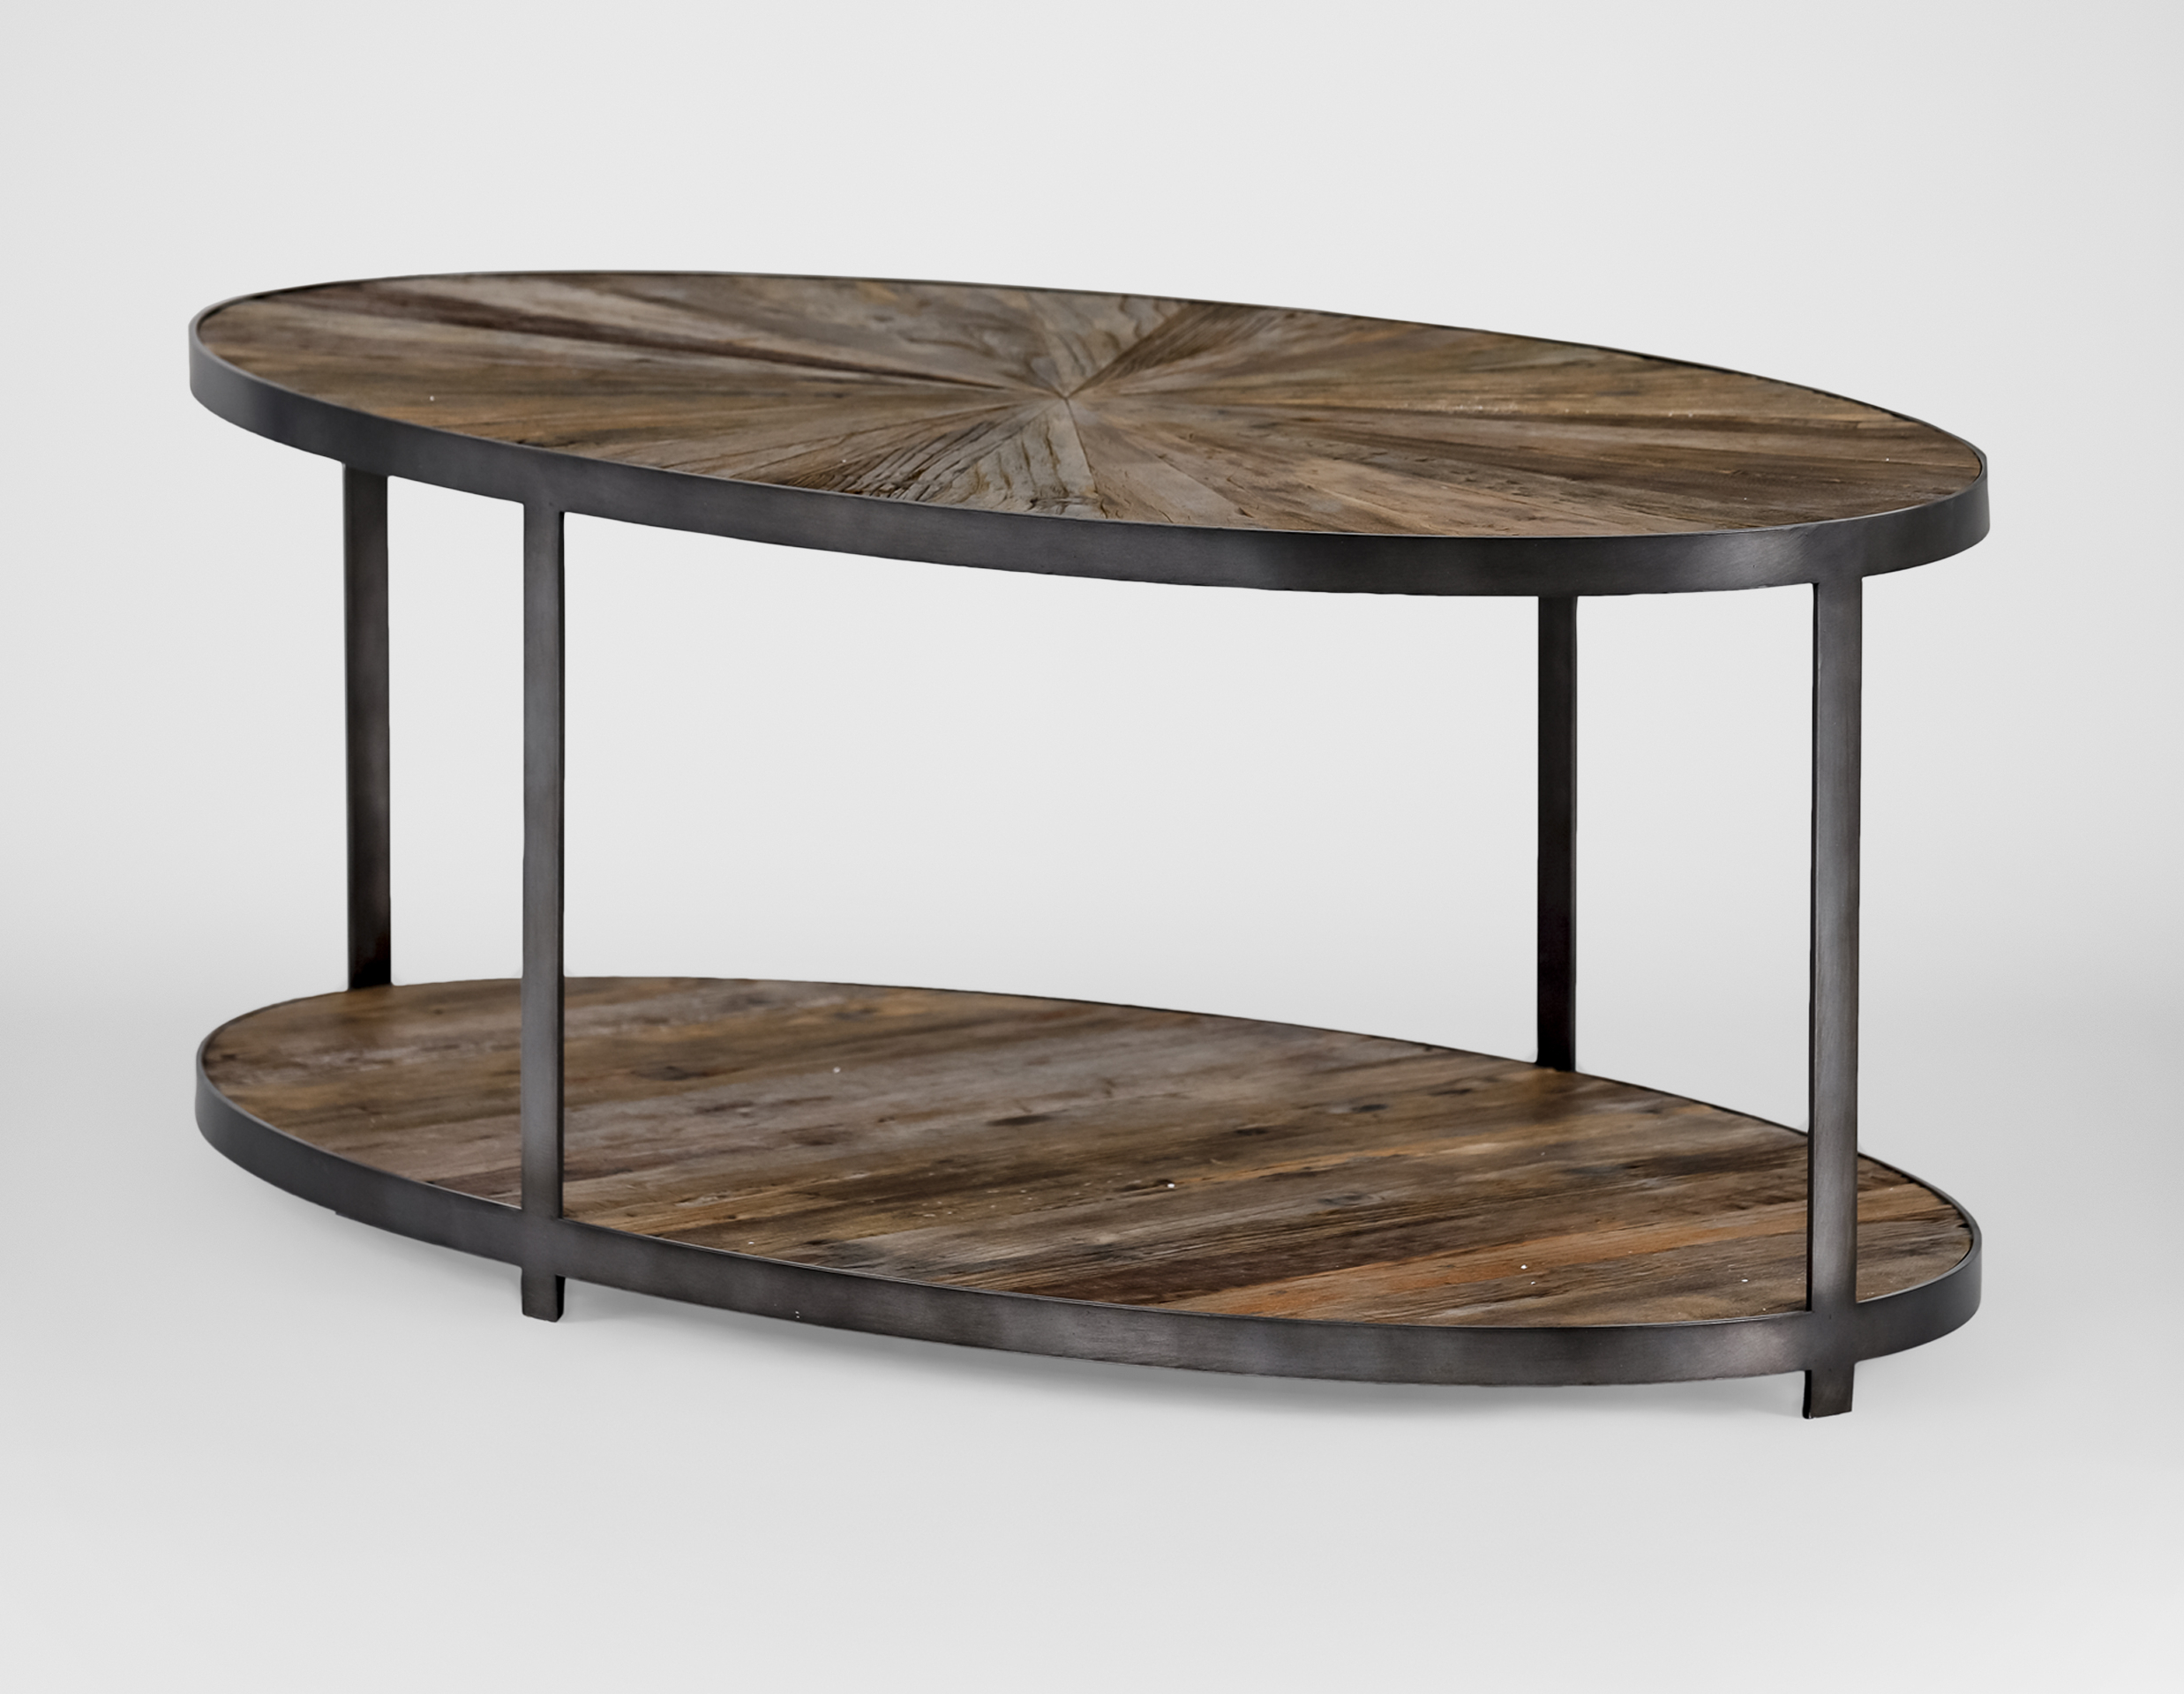 Ronald Coffee Table For Best And Newest Reclaimed Elm Iron Coffee Tables (Gallery 8 of 20)